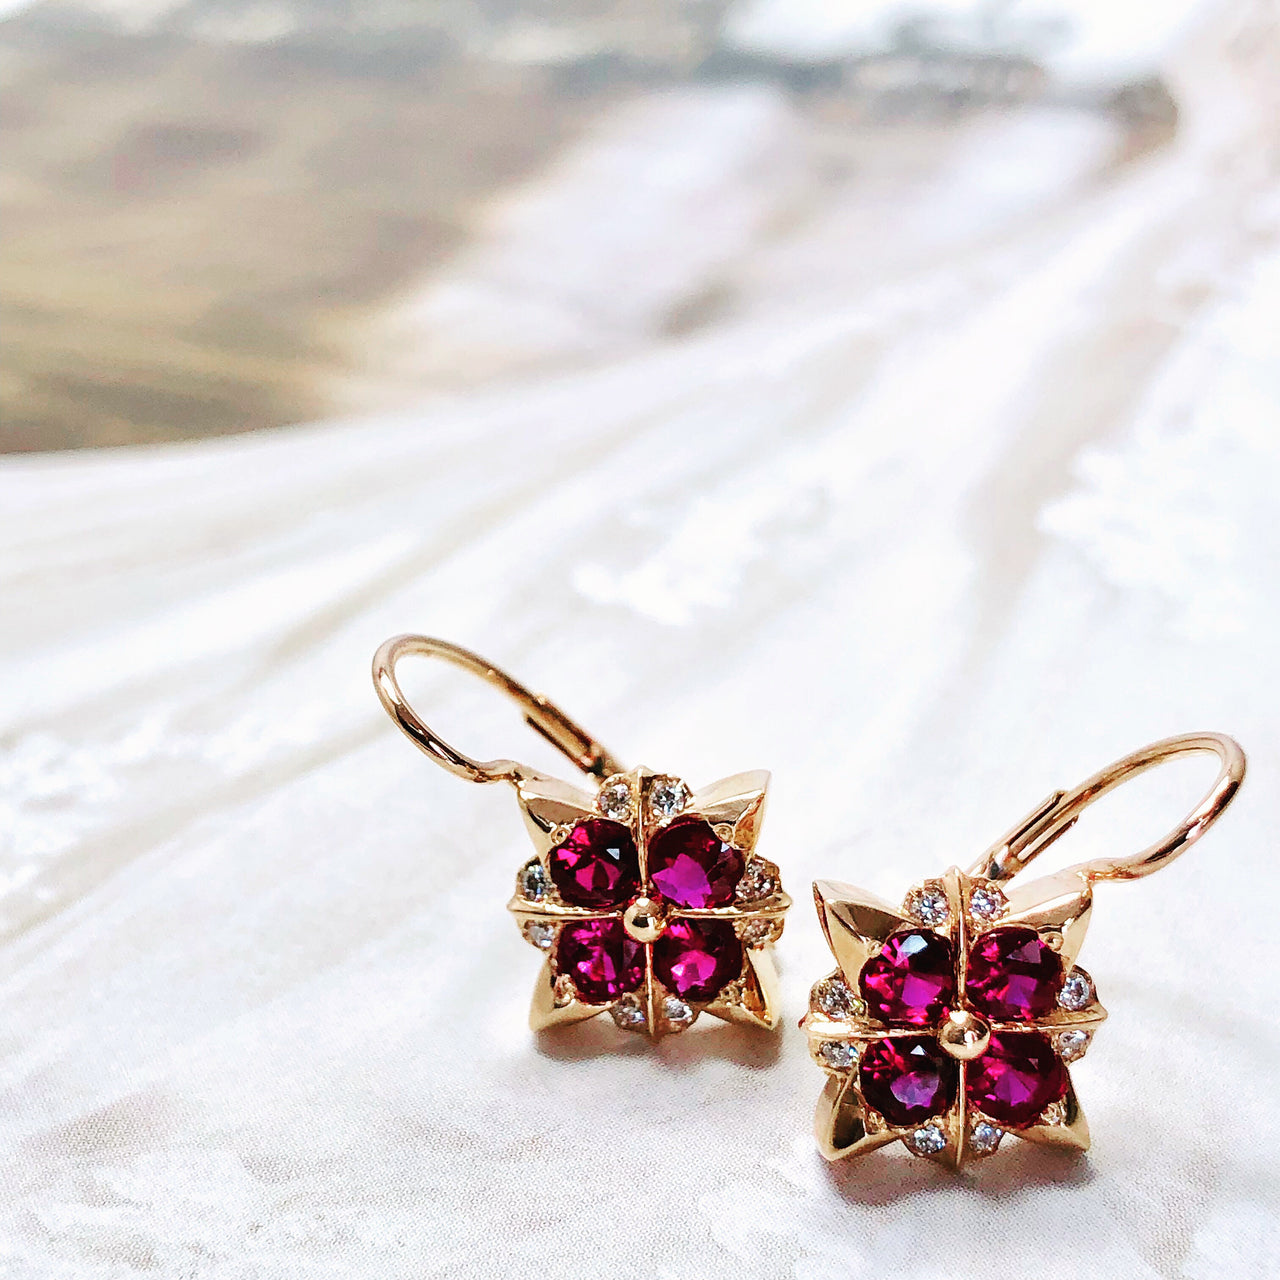 14K Rose Gold Ruby and Diamond Earrings.